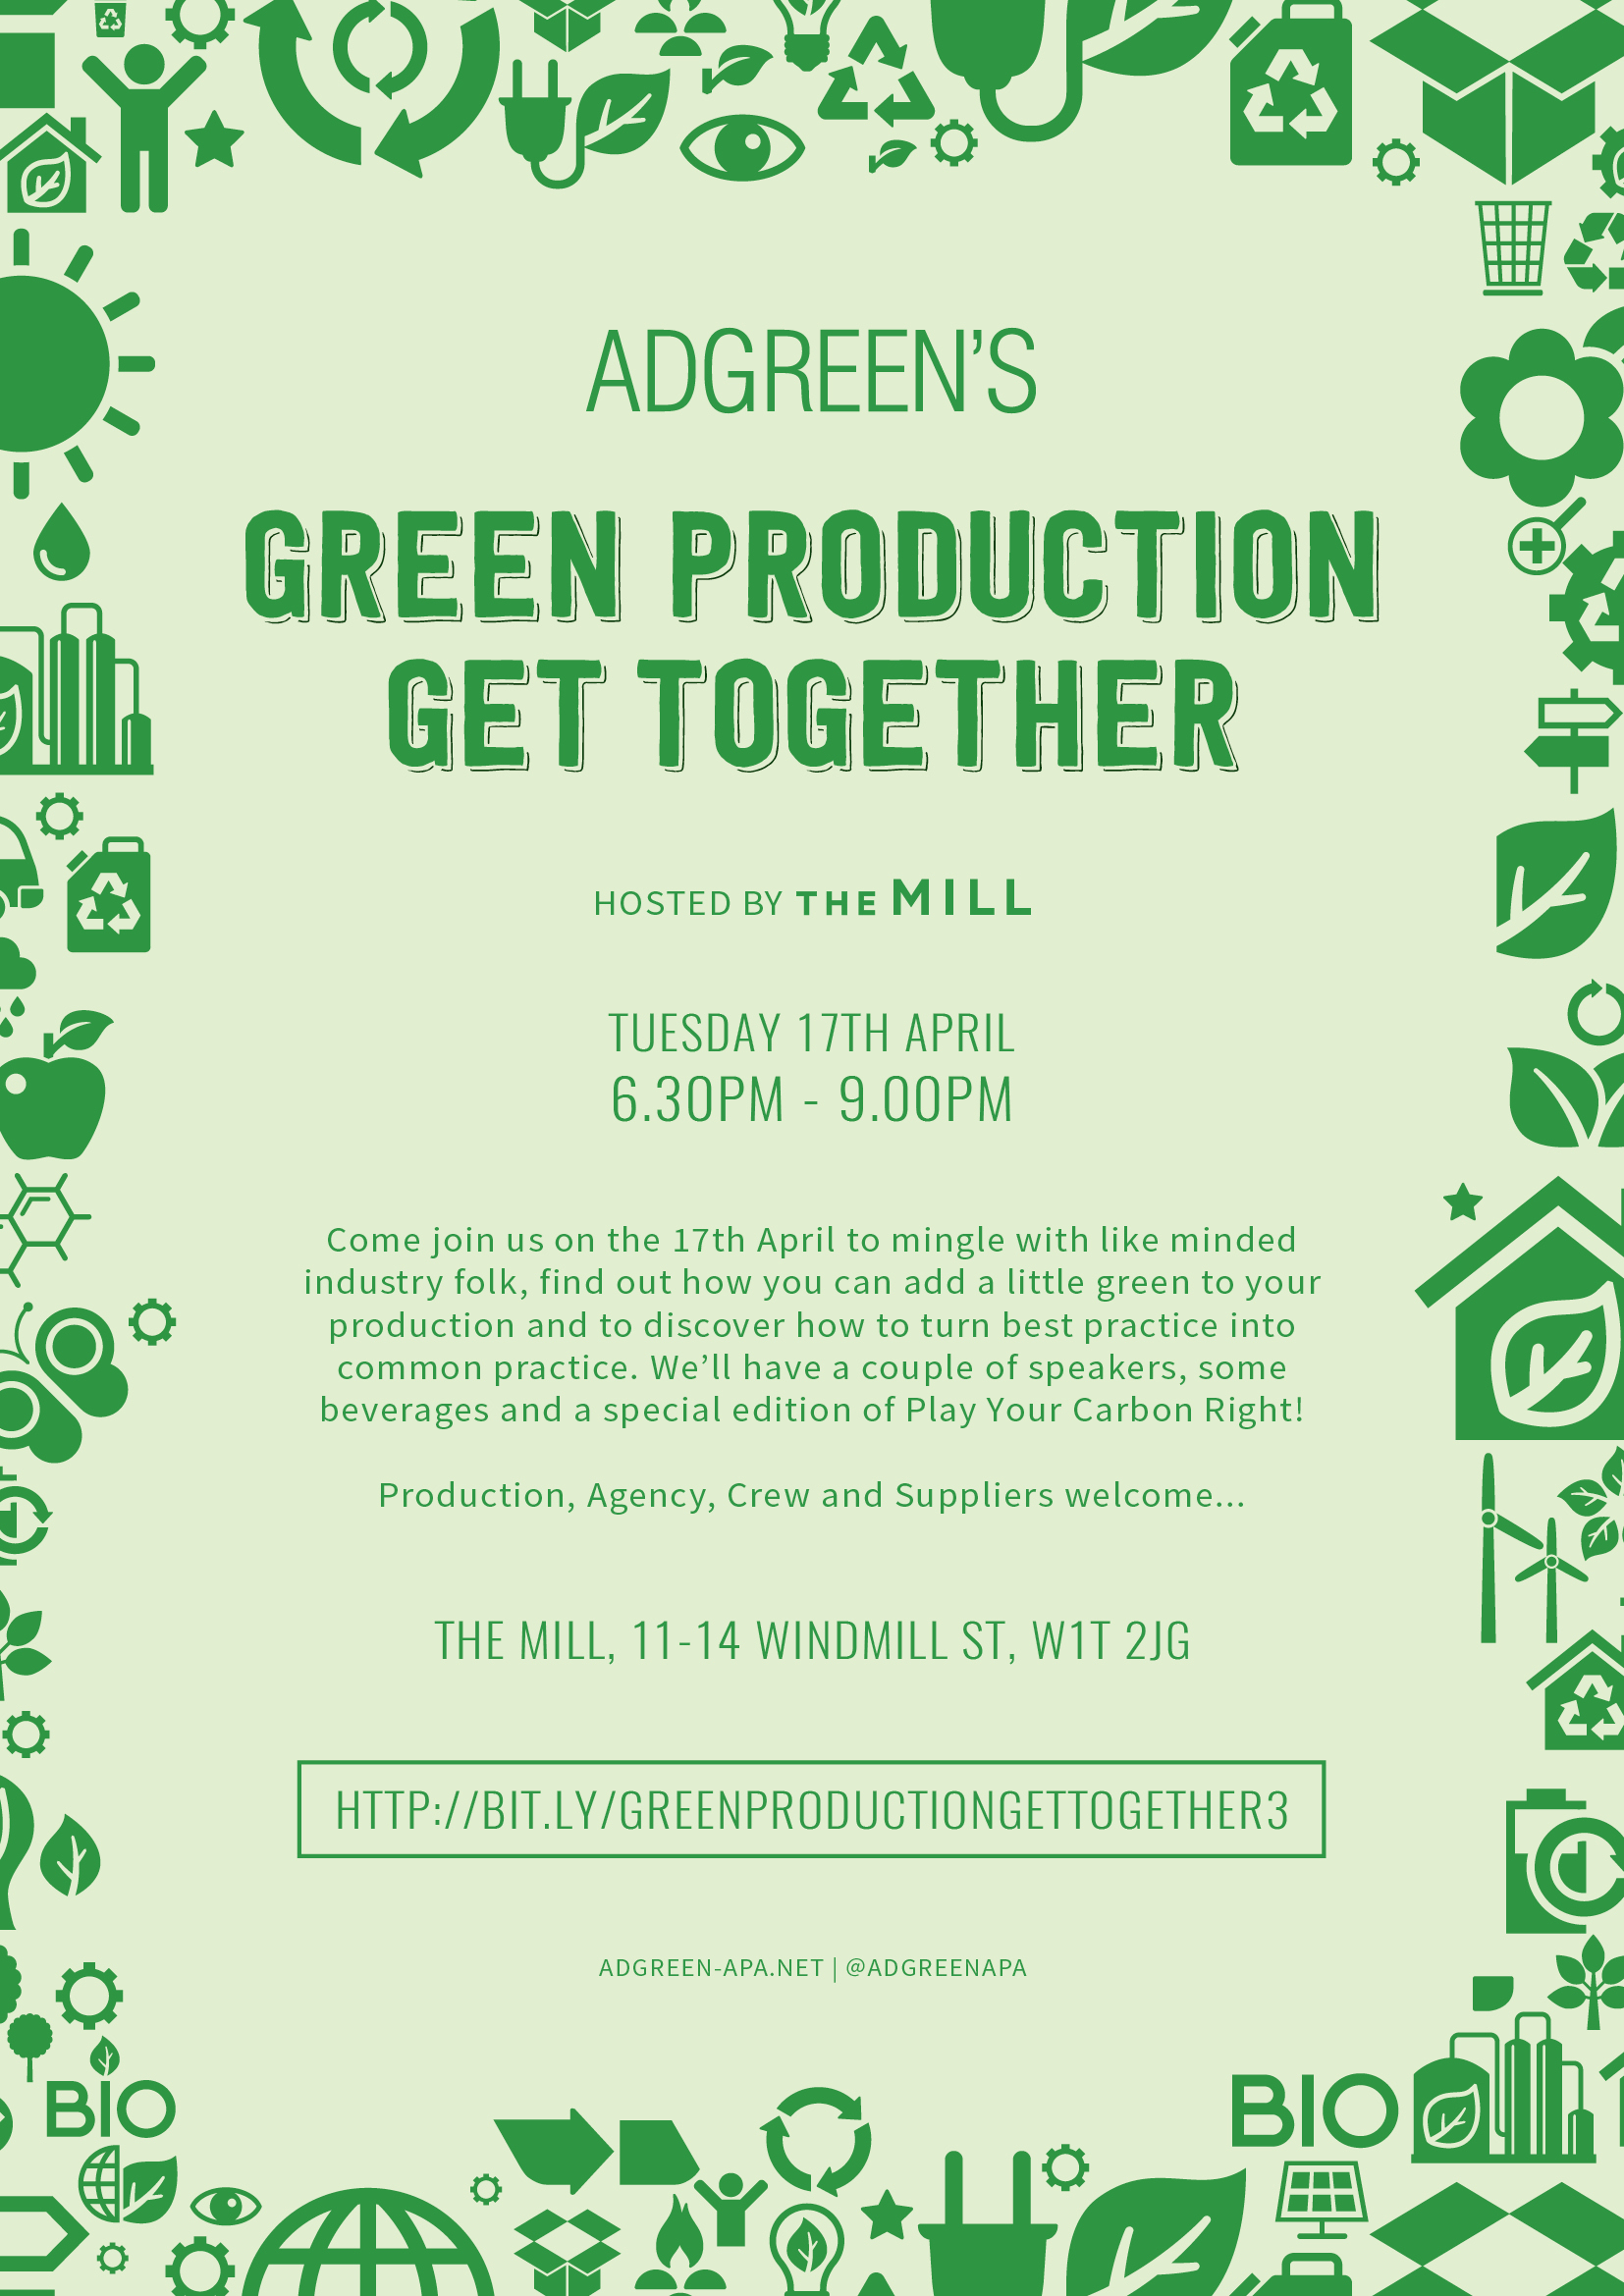 Green Production Get Together! Missed the last get together? Wondering how to make your shoot greener? Well, come along on the 17th of April to mingle with like minded industry folk, find out how you can add a little green to your production and to discover how to turn best practice into common practice.